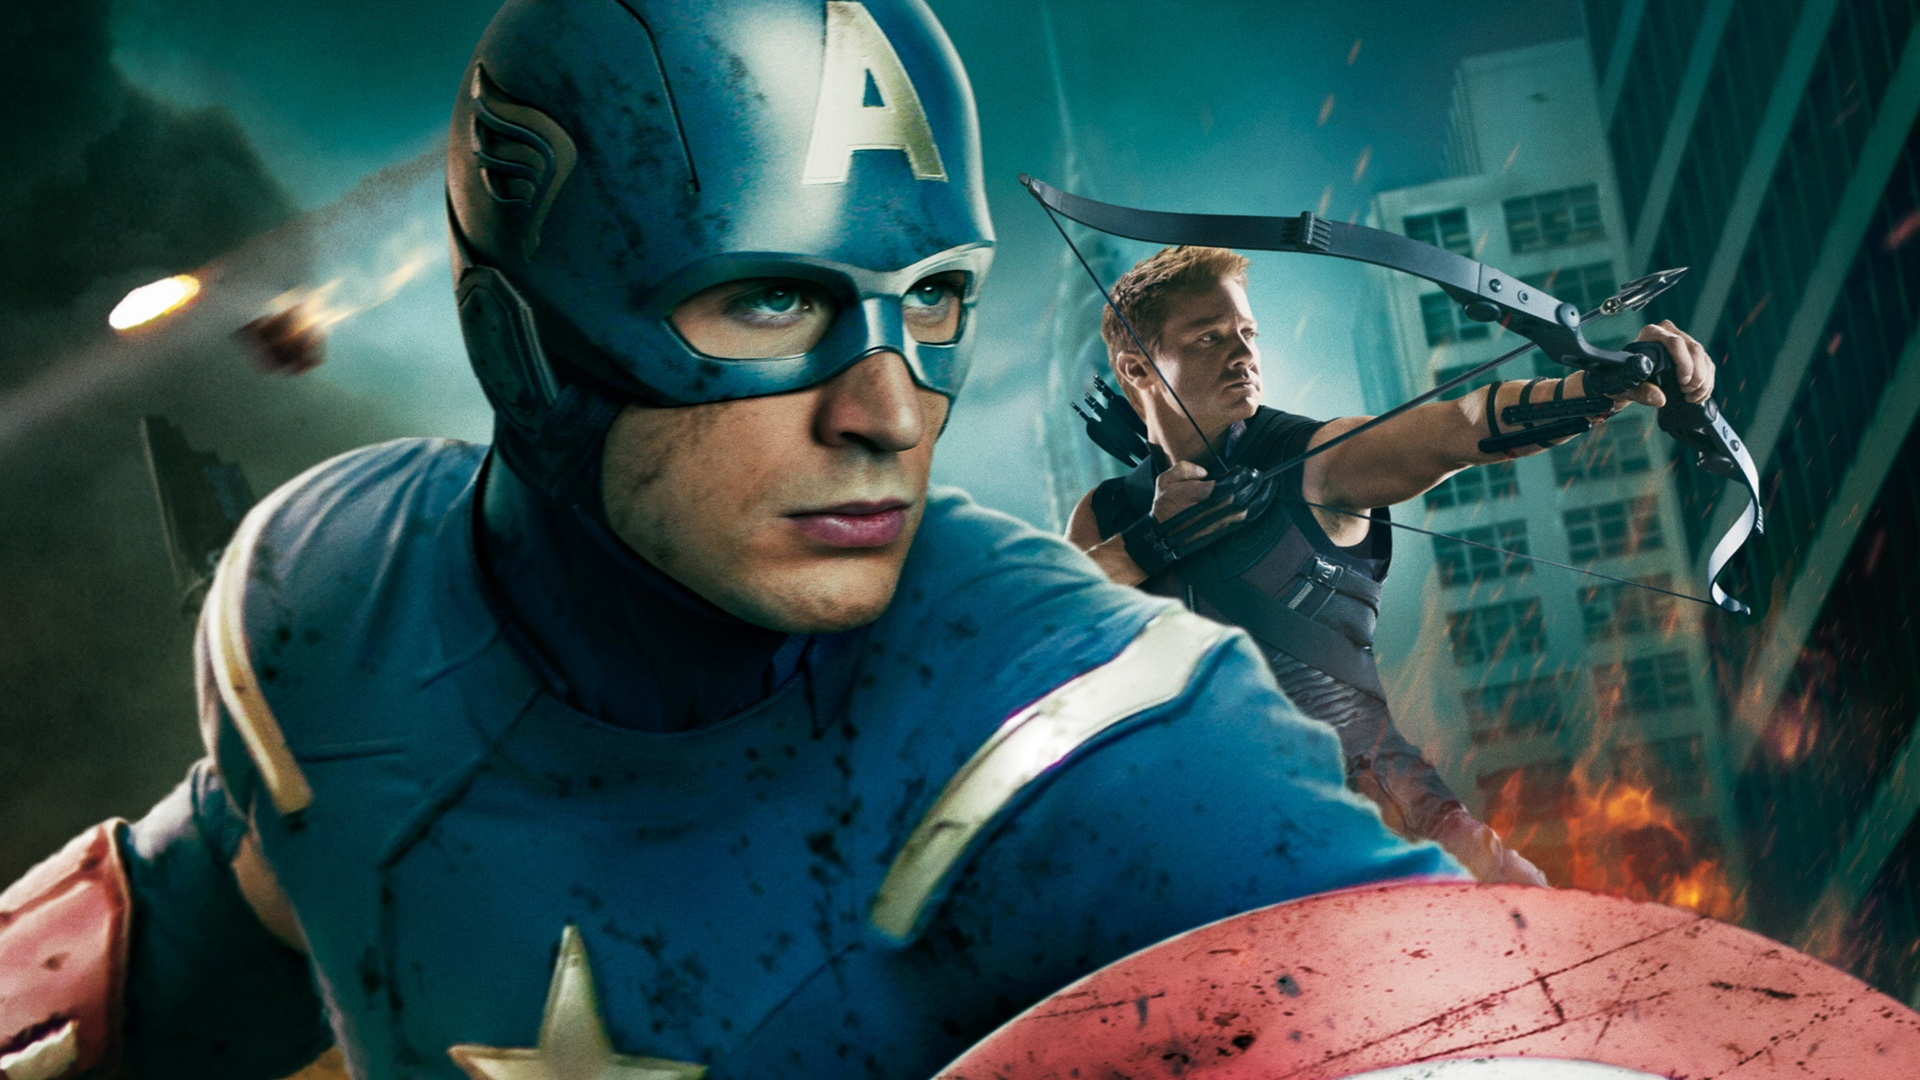 marvel live-action movies images the avengers hd wallpaper and